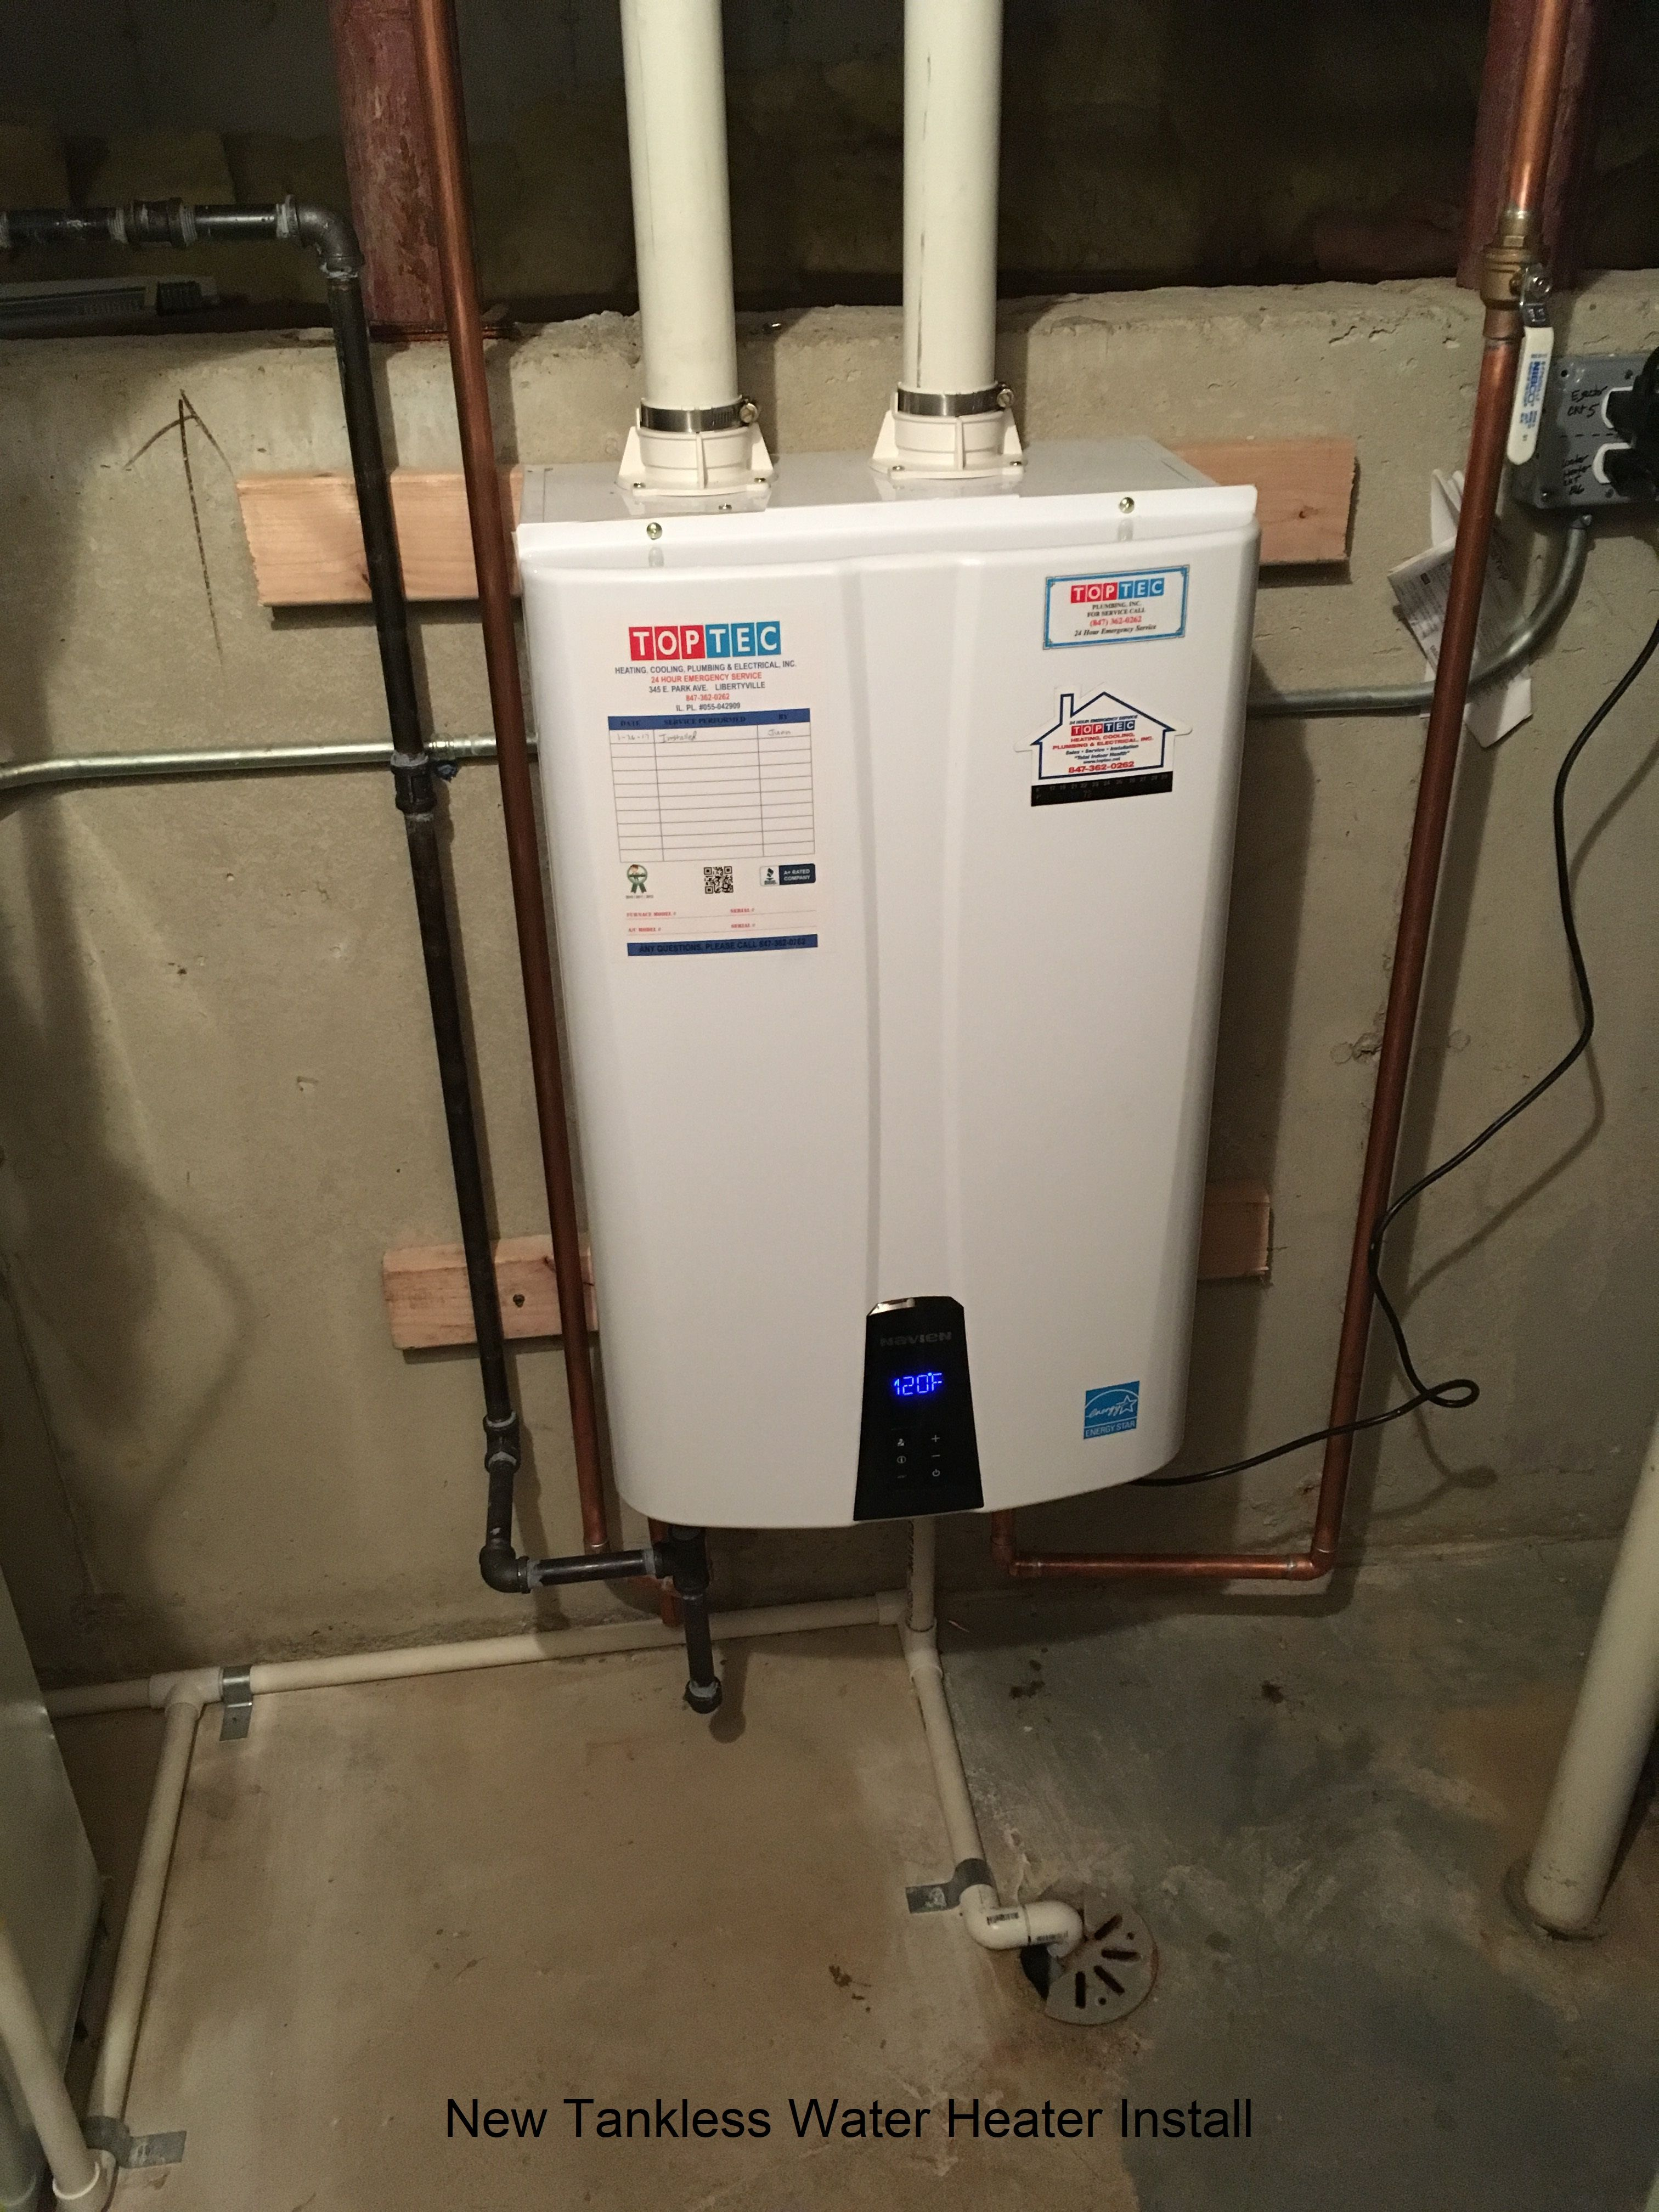 New Tankless Water Heater S From Toptec Call Us For More Info